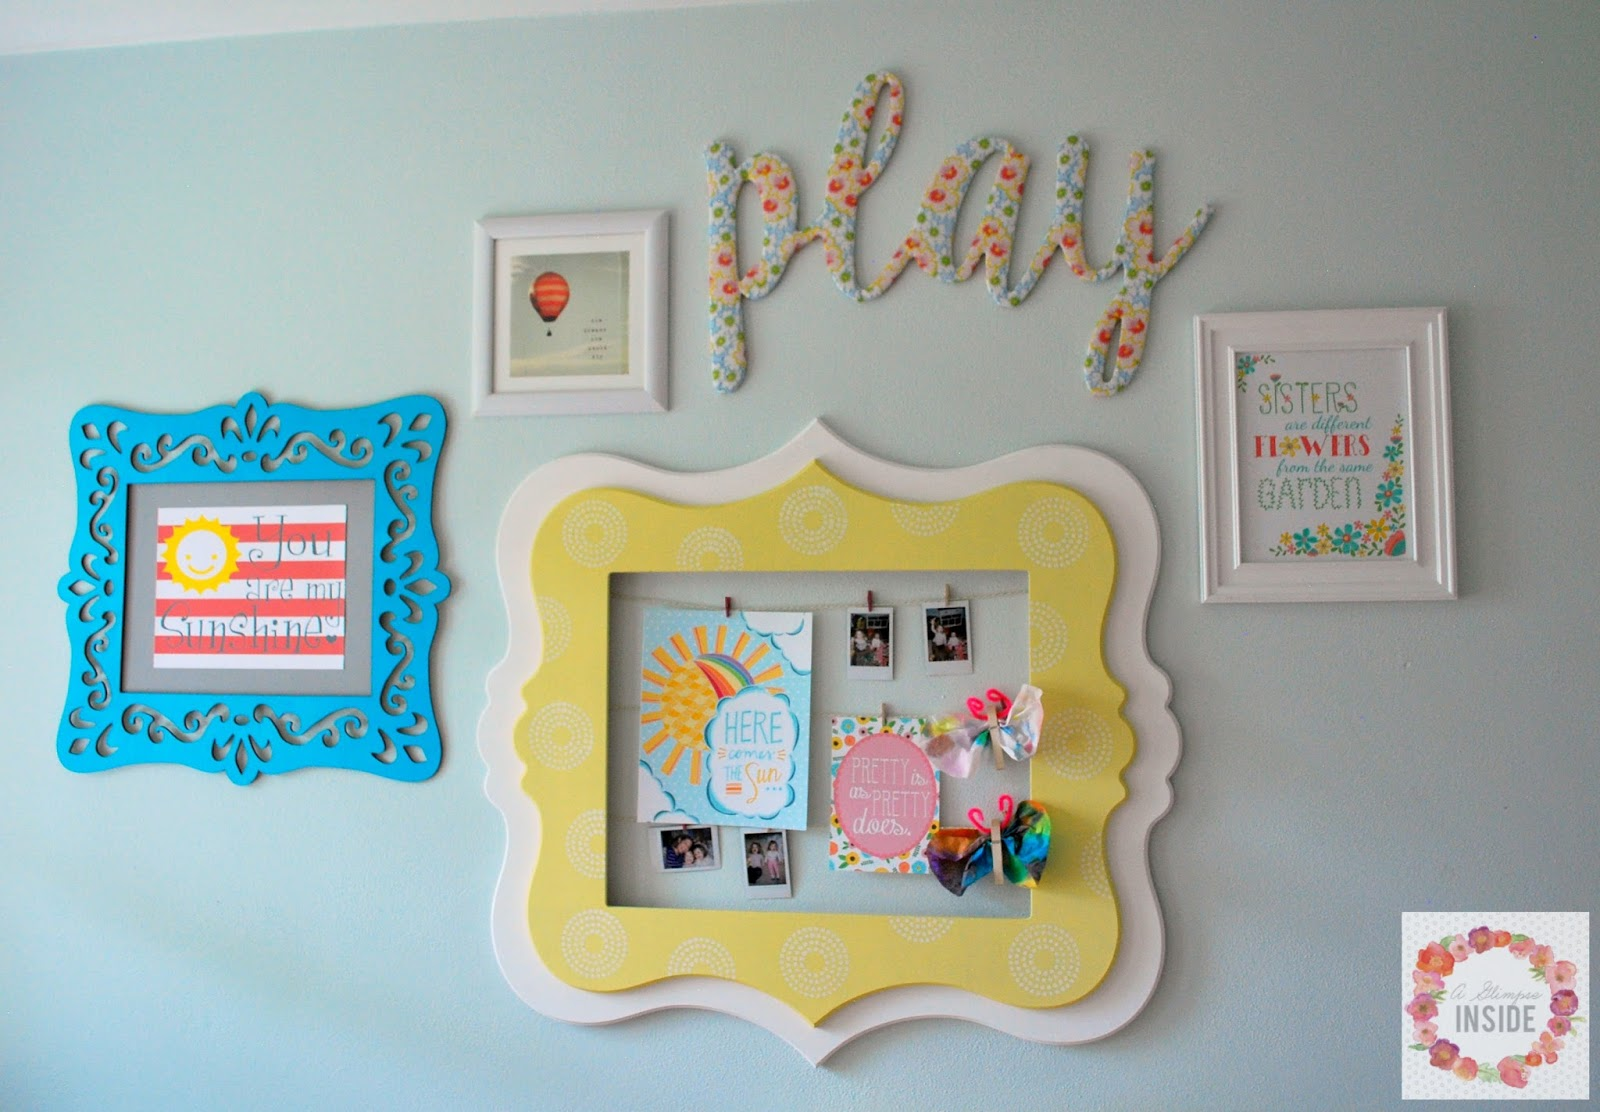 Home Decor: Picture Hanging Strips - The Scrap Shoppe